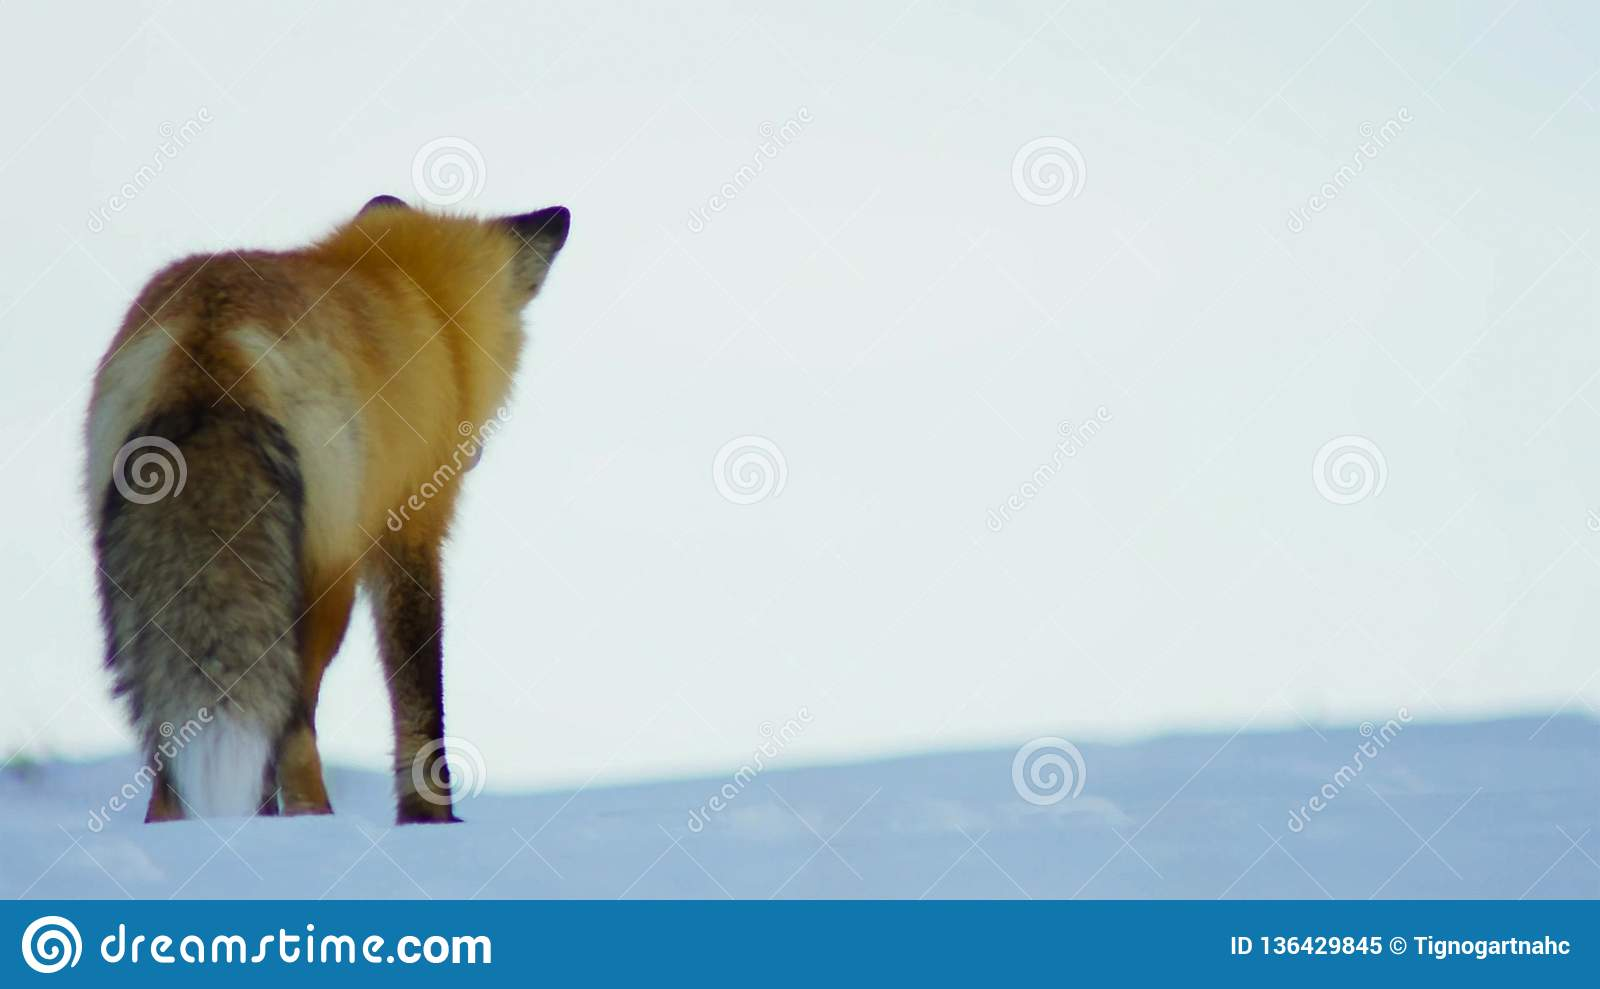 The fox seek food is deep beneath the snow. He listens carefully to pinpoint his target. South Africa